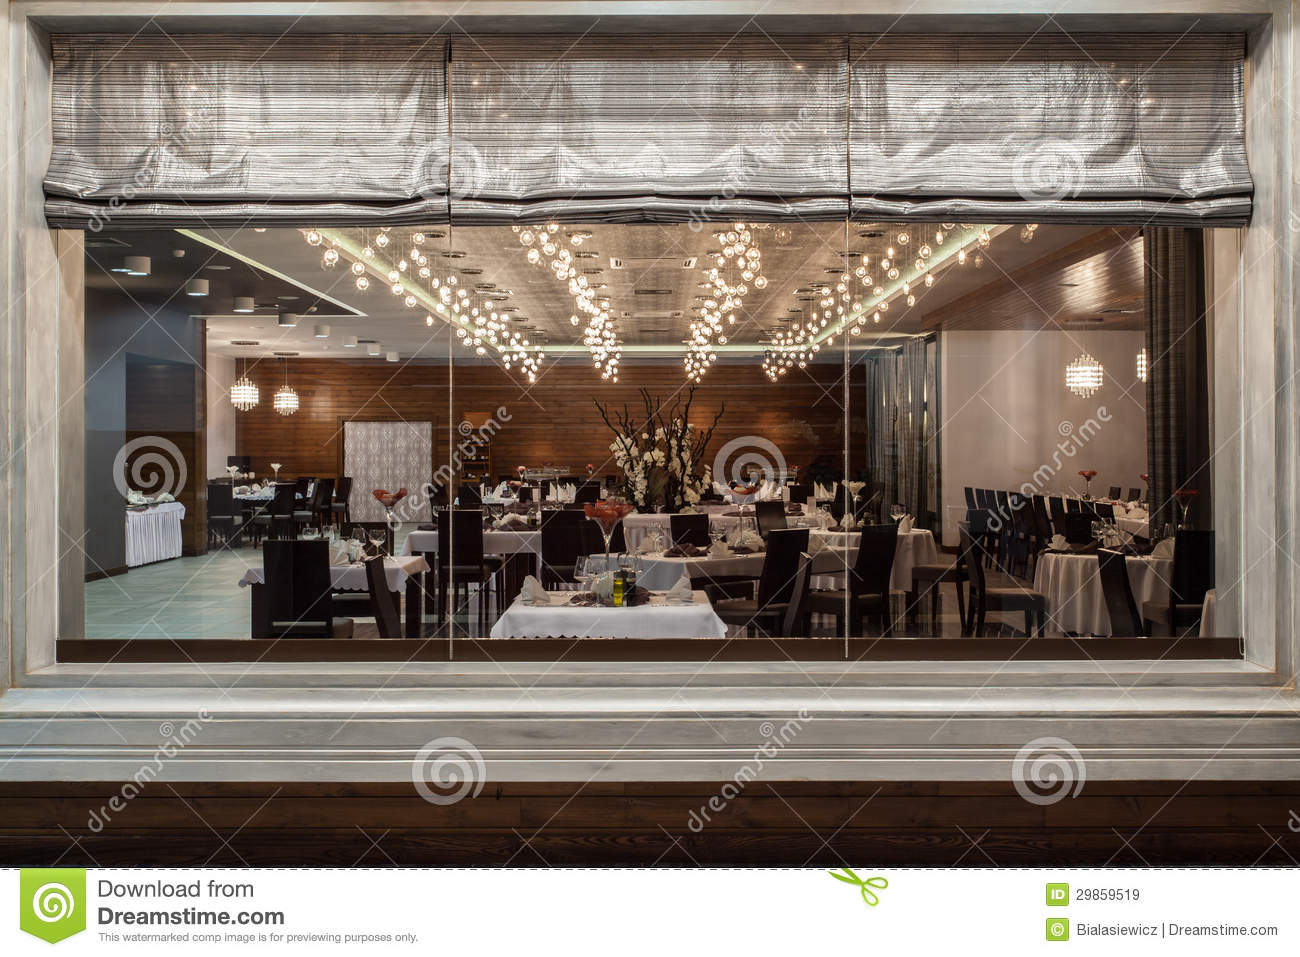 Woodland Hotel Restaurant Royalty Free Stock Images  : woodland hotel restaurant view huge window 29859519 from www.dreamstime.com size 1300 x 957 jpeg 197kB